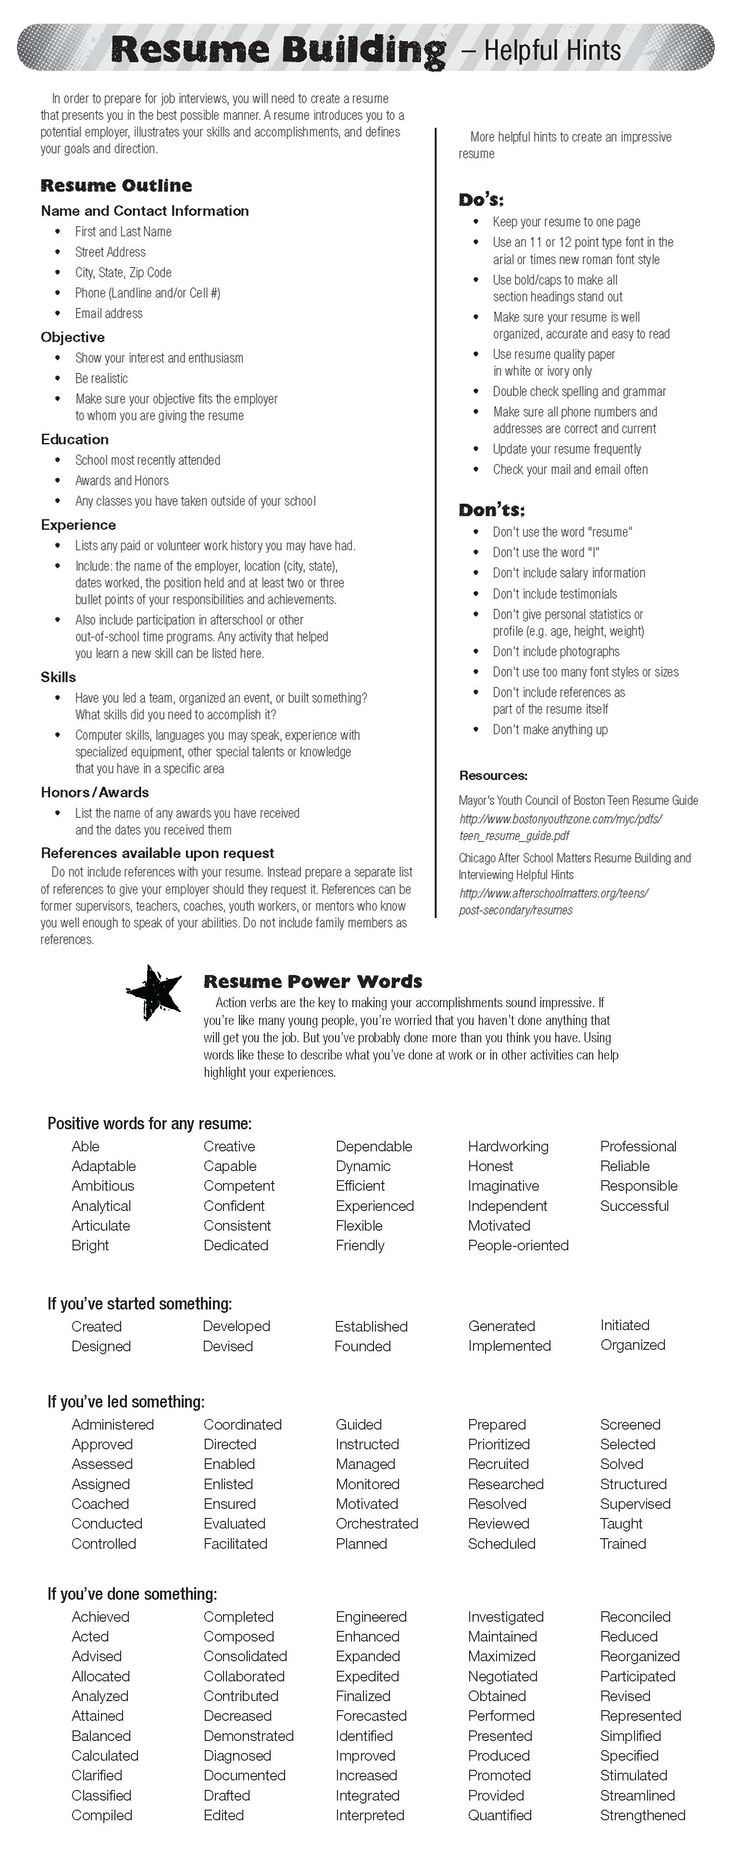 Opposenewapstandardsus  Scenic  Ideas About Resume On Pinterest  Cv Format Resume Cv And  With Goodlooking  Ideas About Resume On Pinterest  Cv Format Resume Cv And Resume Templates With Delectable Superintendent Resume Also Sample Hr Resume In Addition Accounting Resume Skills And Edit Resume As Well As Scientific Resume Additionally Resume Writers Nyc From Pinterestcom With Opposenewapstandardsus  Goodlooking  Ideas About Resume On Pinterest  Cv Format Resume Cv And  With Delectable  Ideas About Resume On Pinterest  Cv Format Resume Cv And Resume Templates And Scenic Superintendent Resume Also Sample Hr Resume In Addition Accounting Resume Skills From Pinterestcom